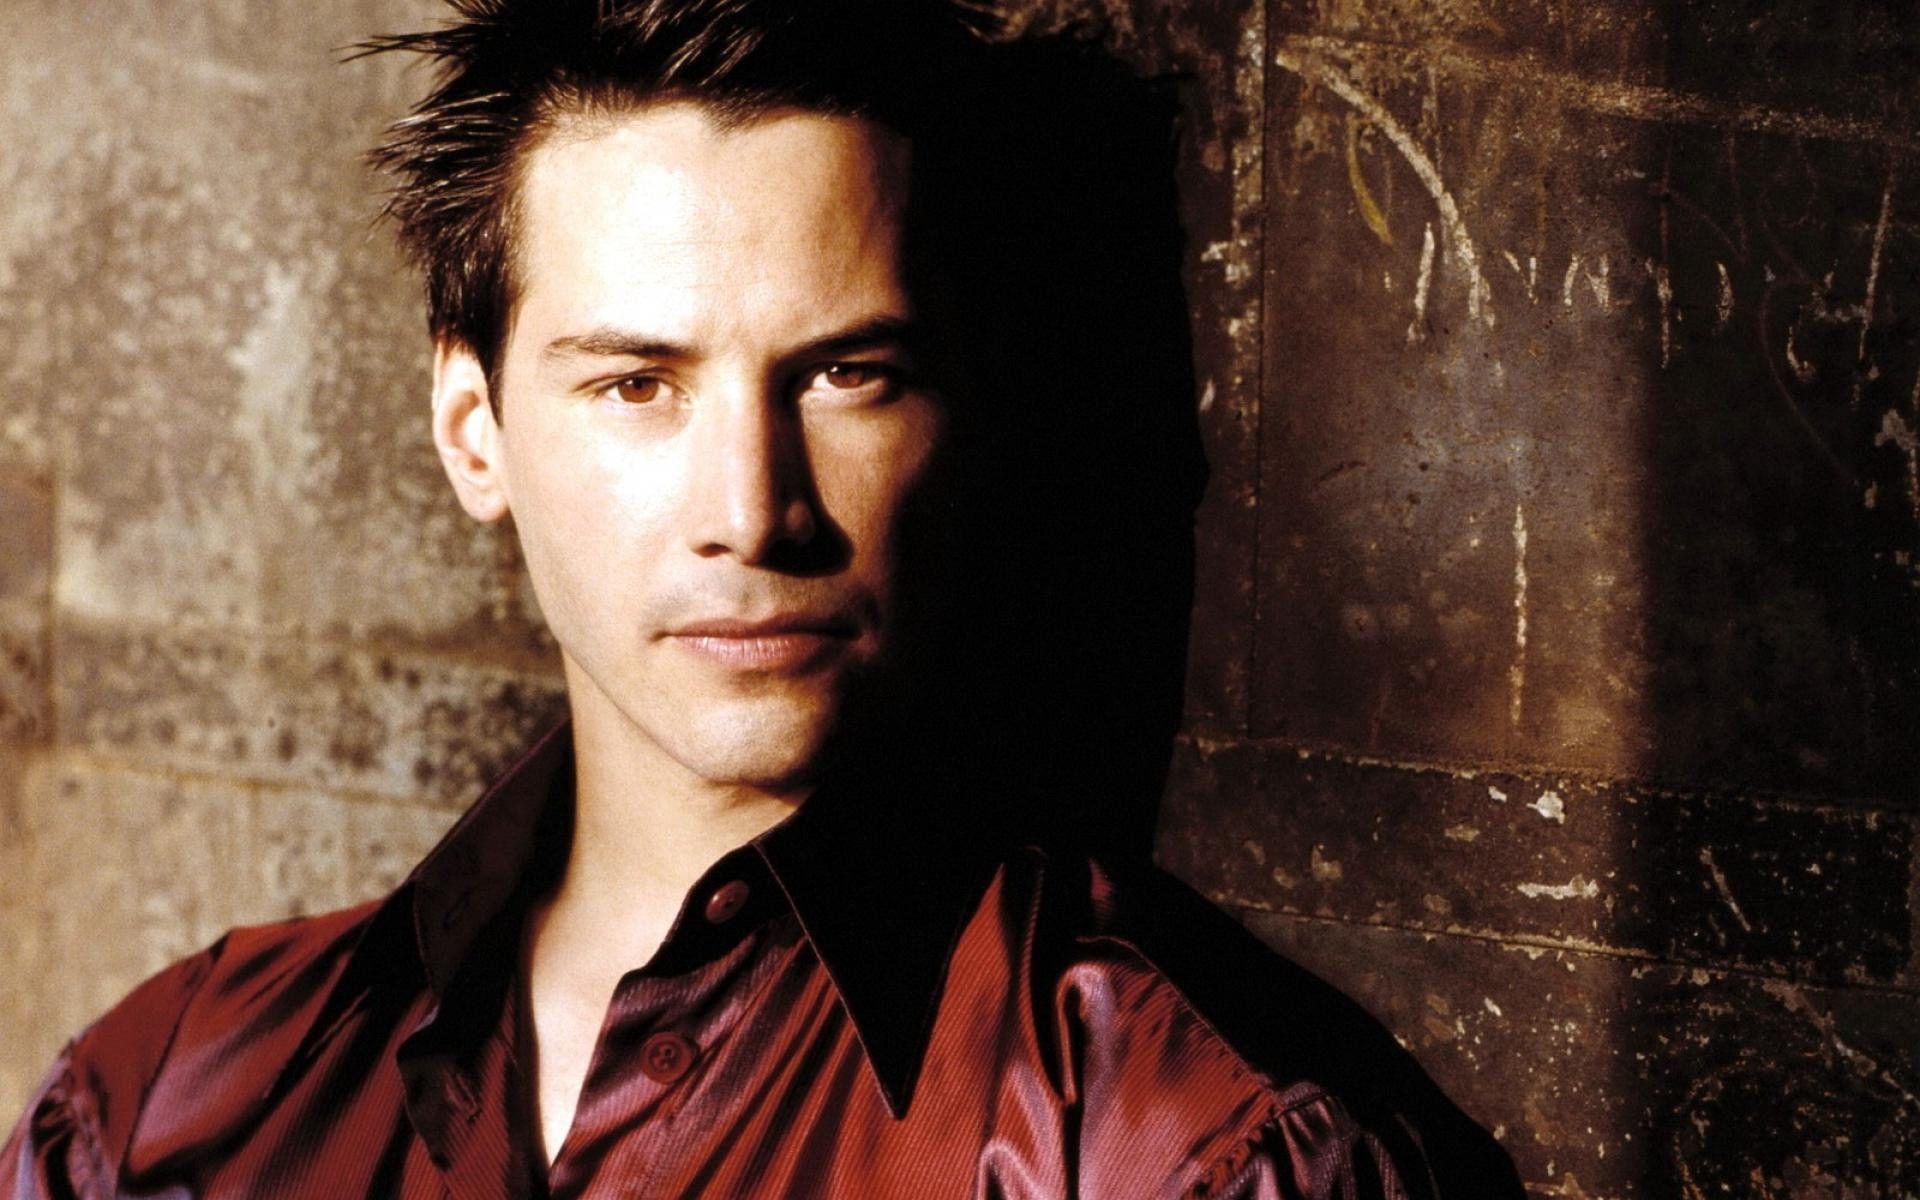 Keanu Reeves Wallpapers high quality HD wallpapers